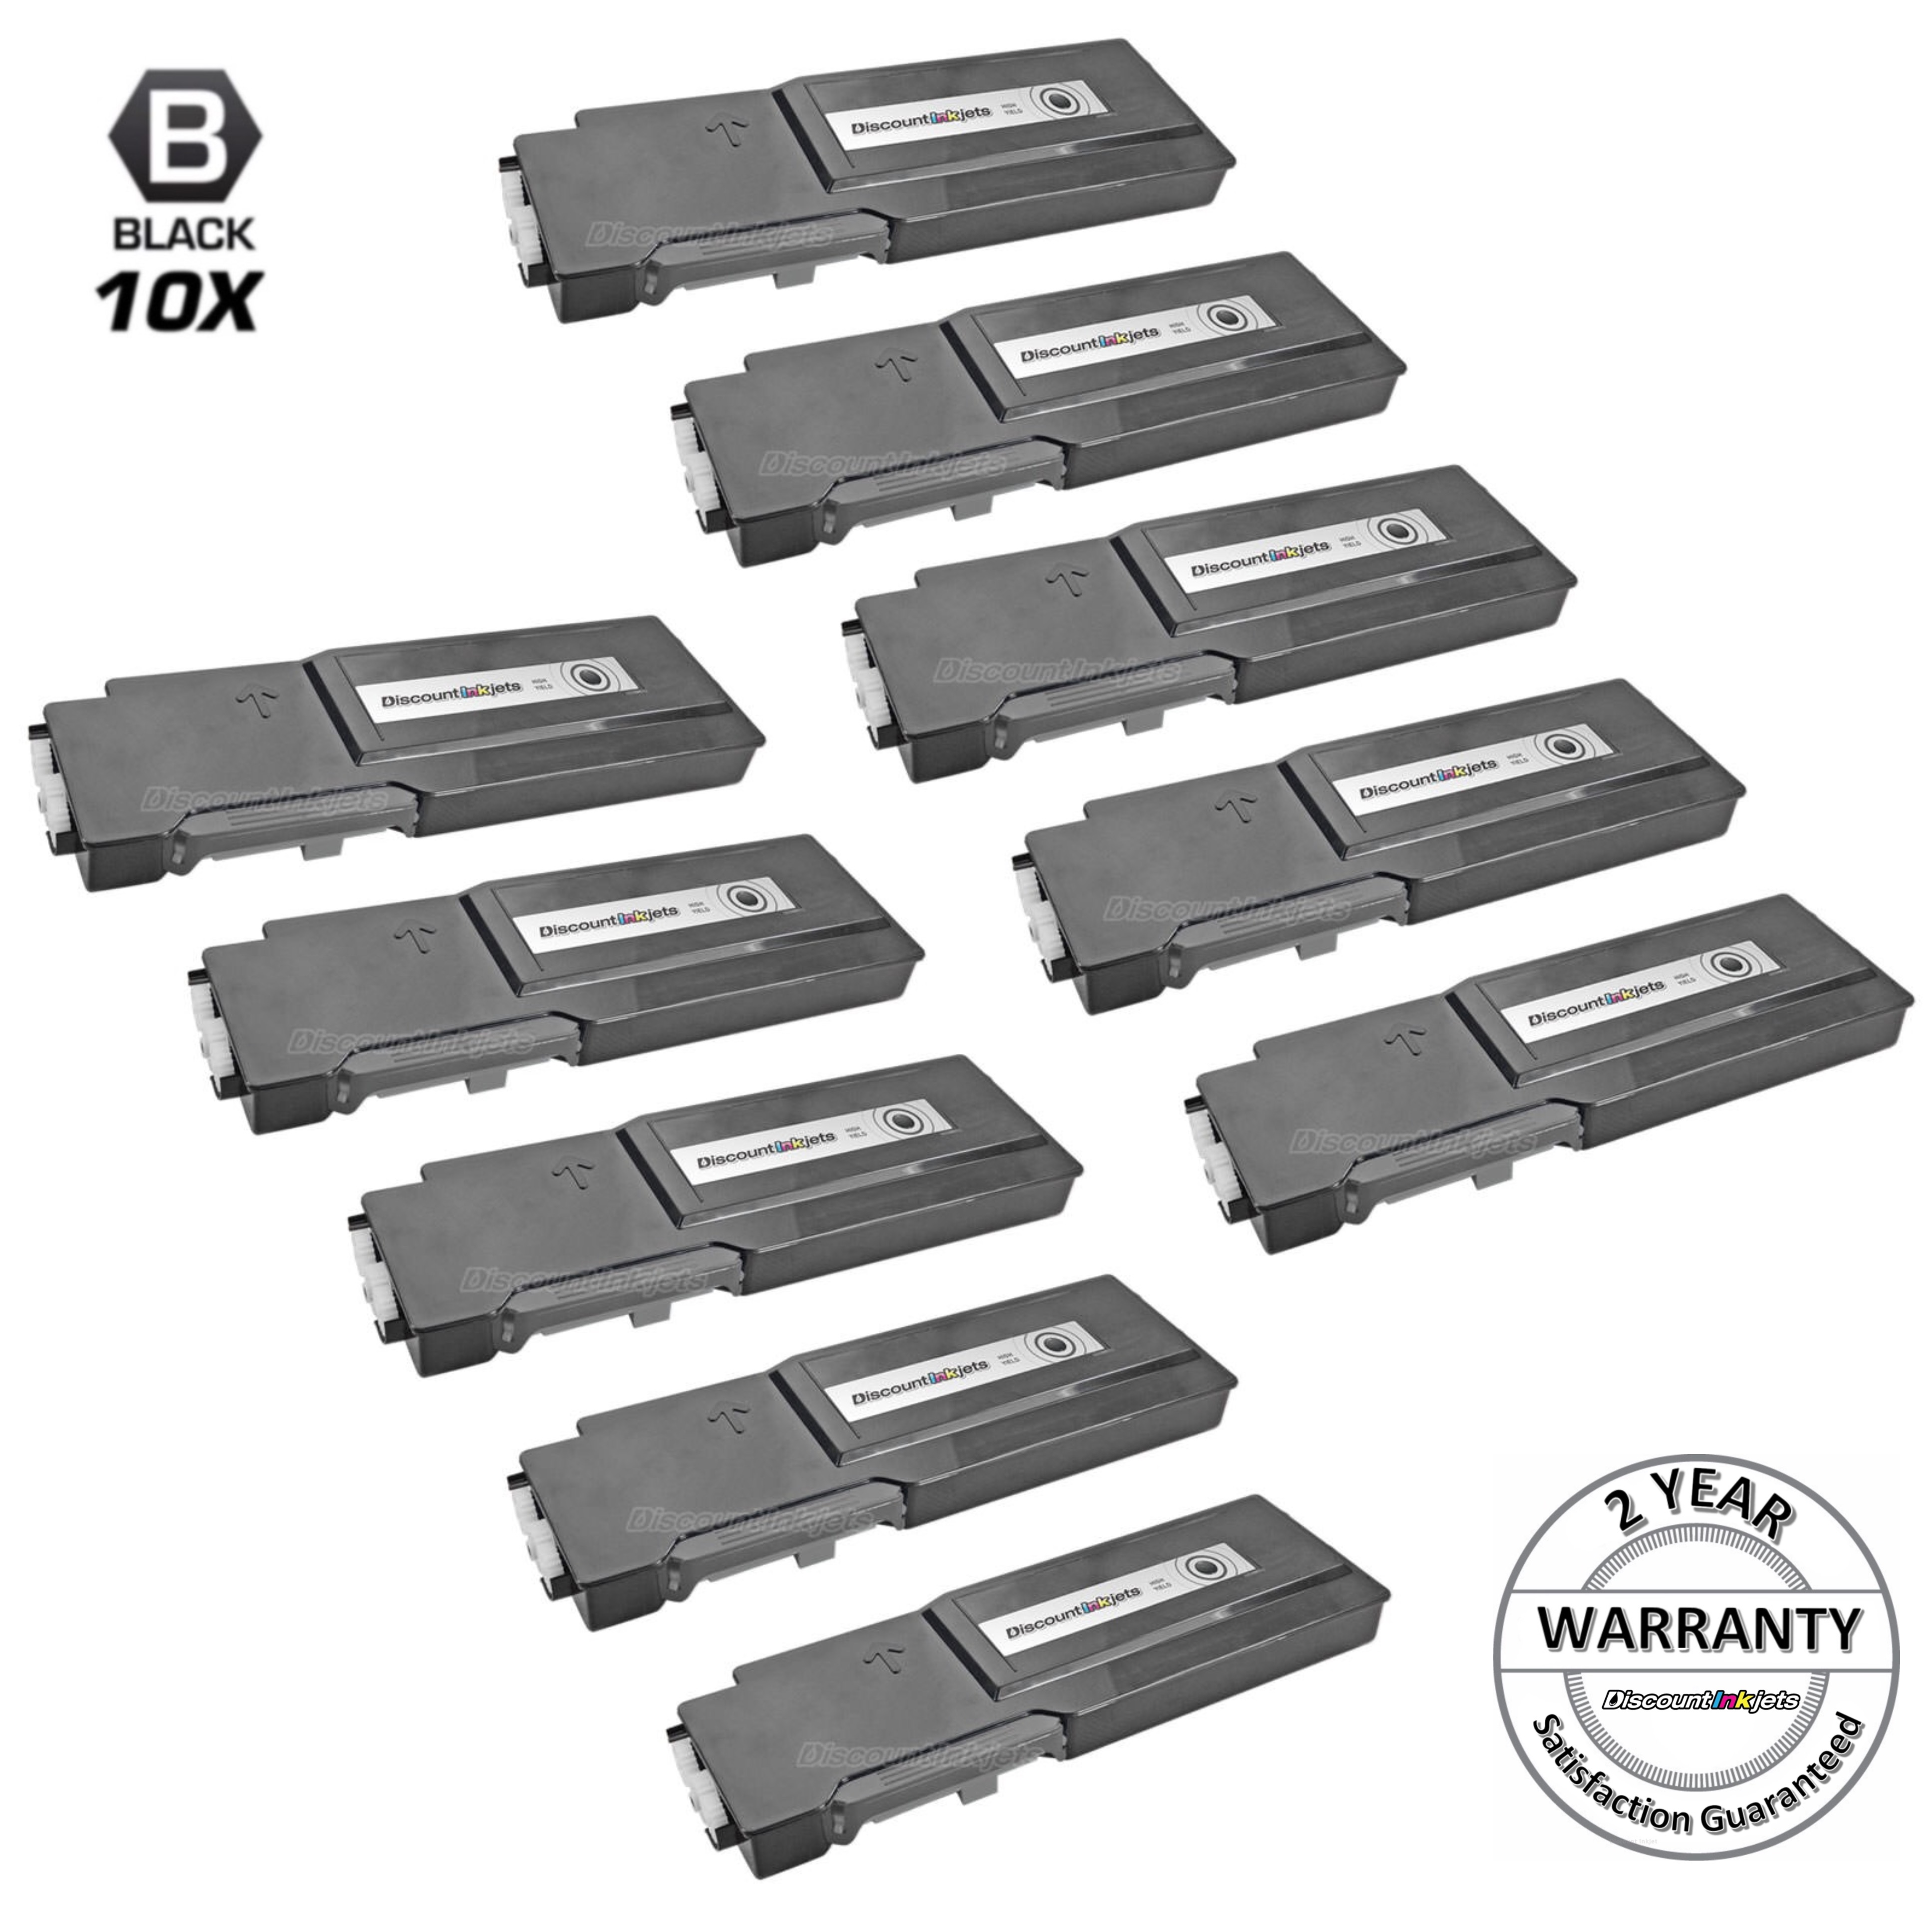 6600DN; WorkCentre 6605 Works with: Phaser 6600 106R02244 6605N 6605DN On-Site Laser Compatible Toner Replacement for Xerox 106R02228 6600N Black